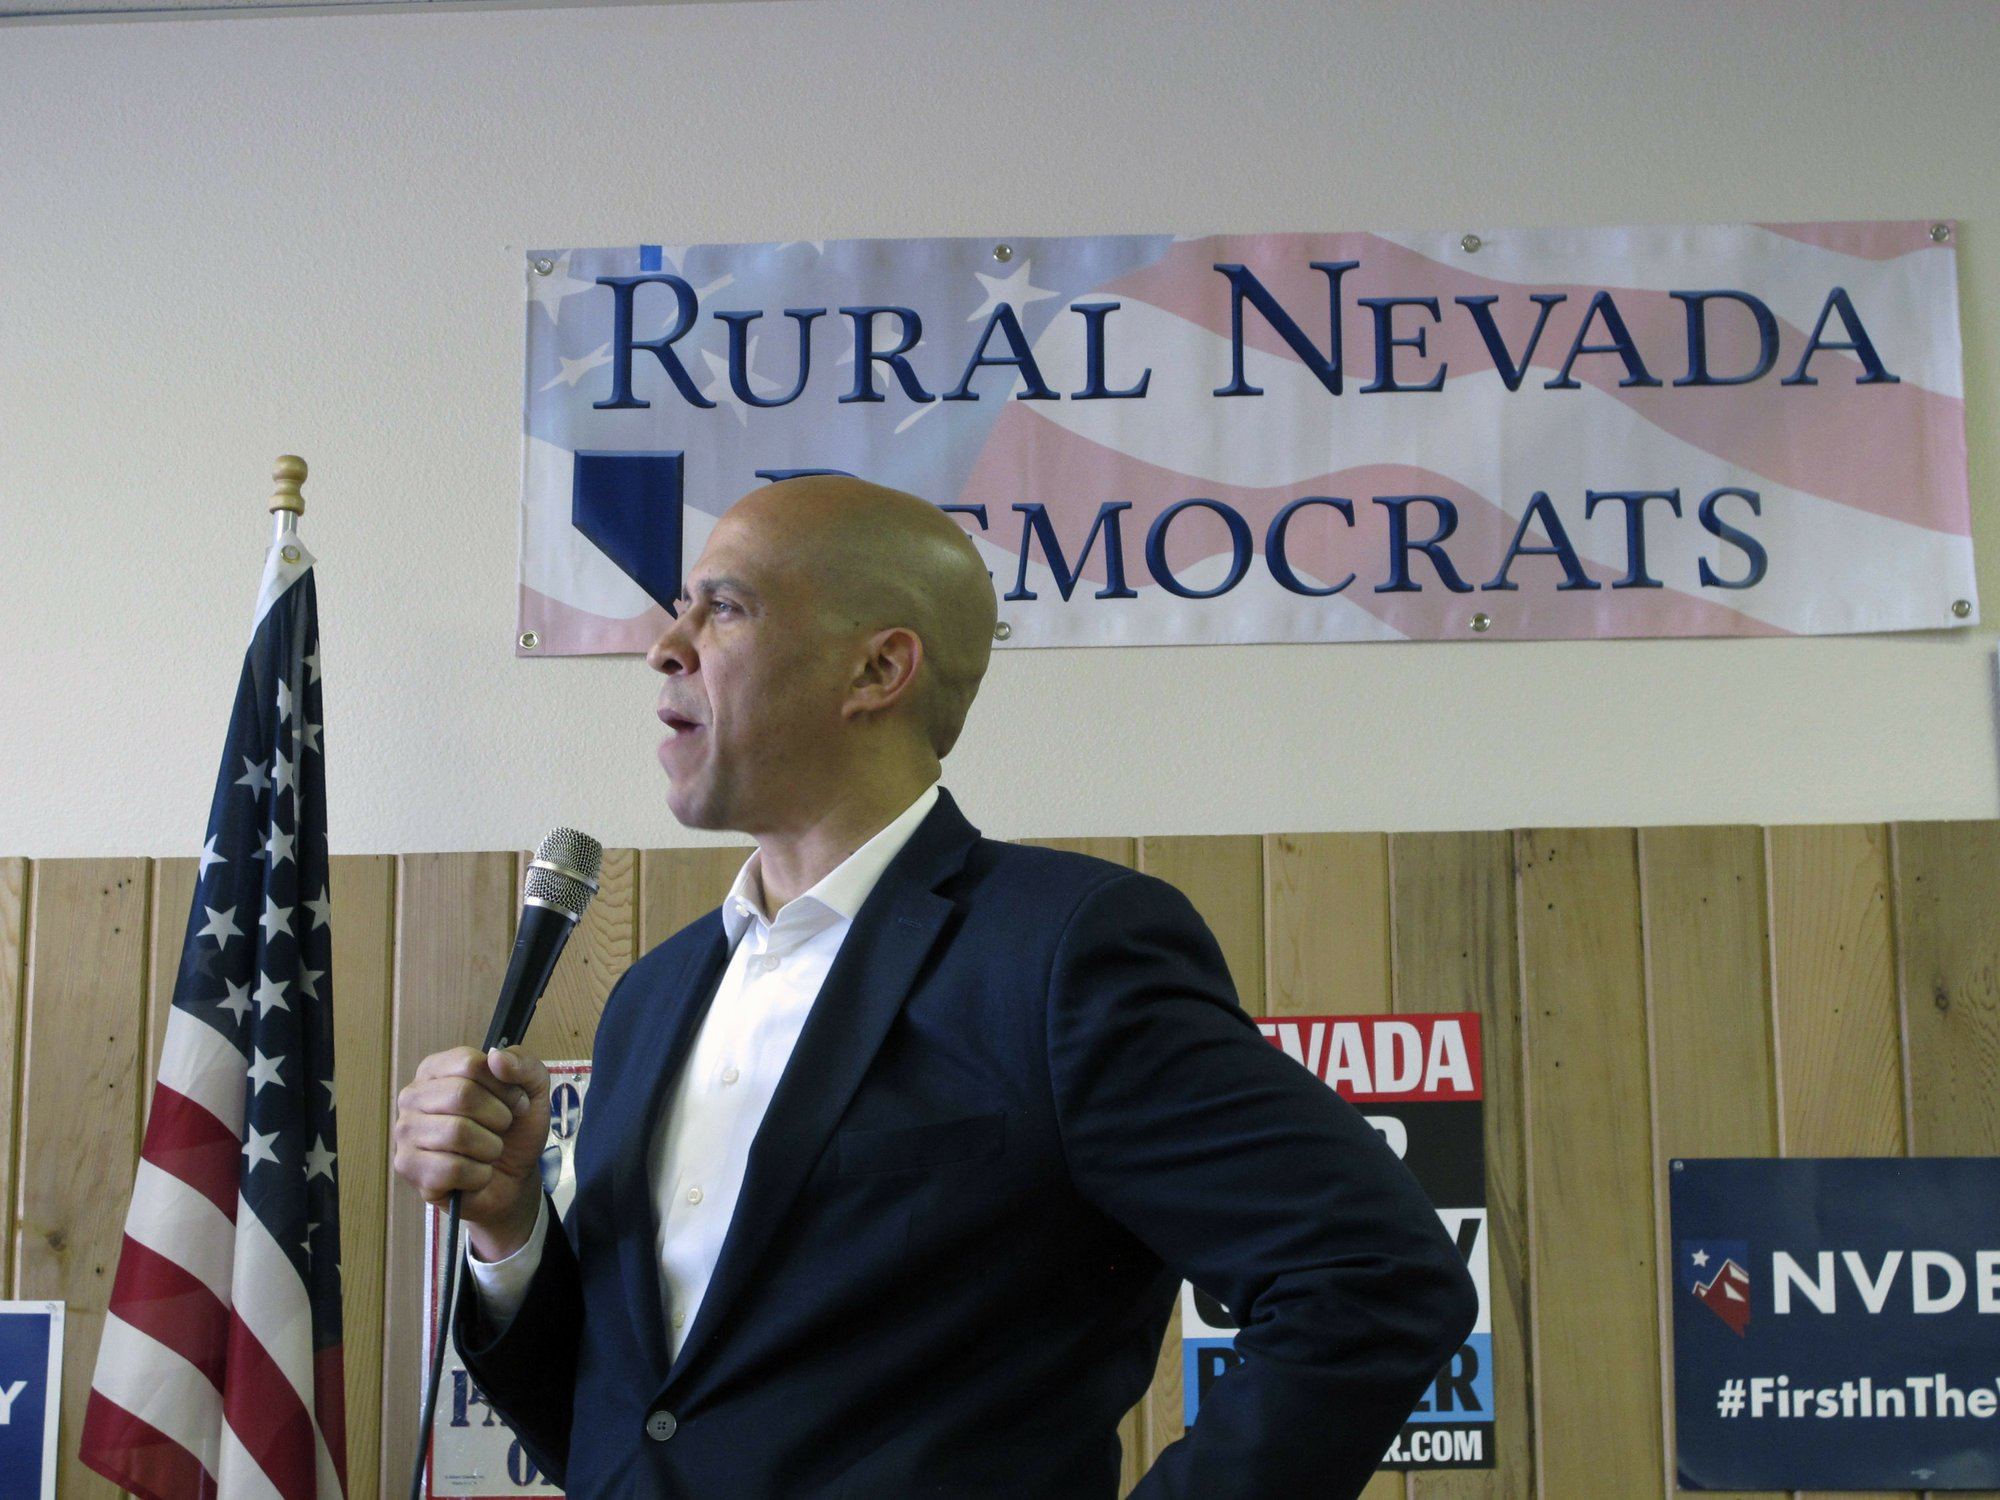 Booker first 2020 presidential hopeful to visit rural Nevada